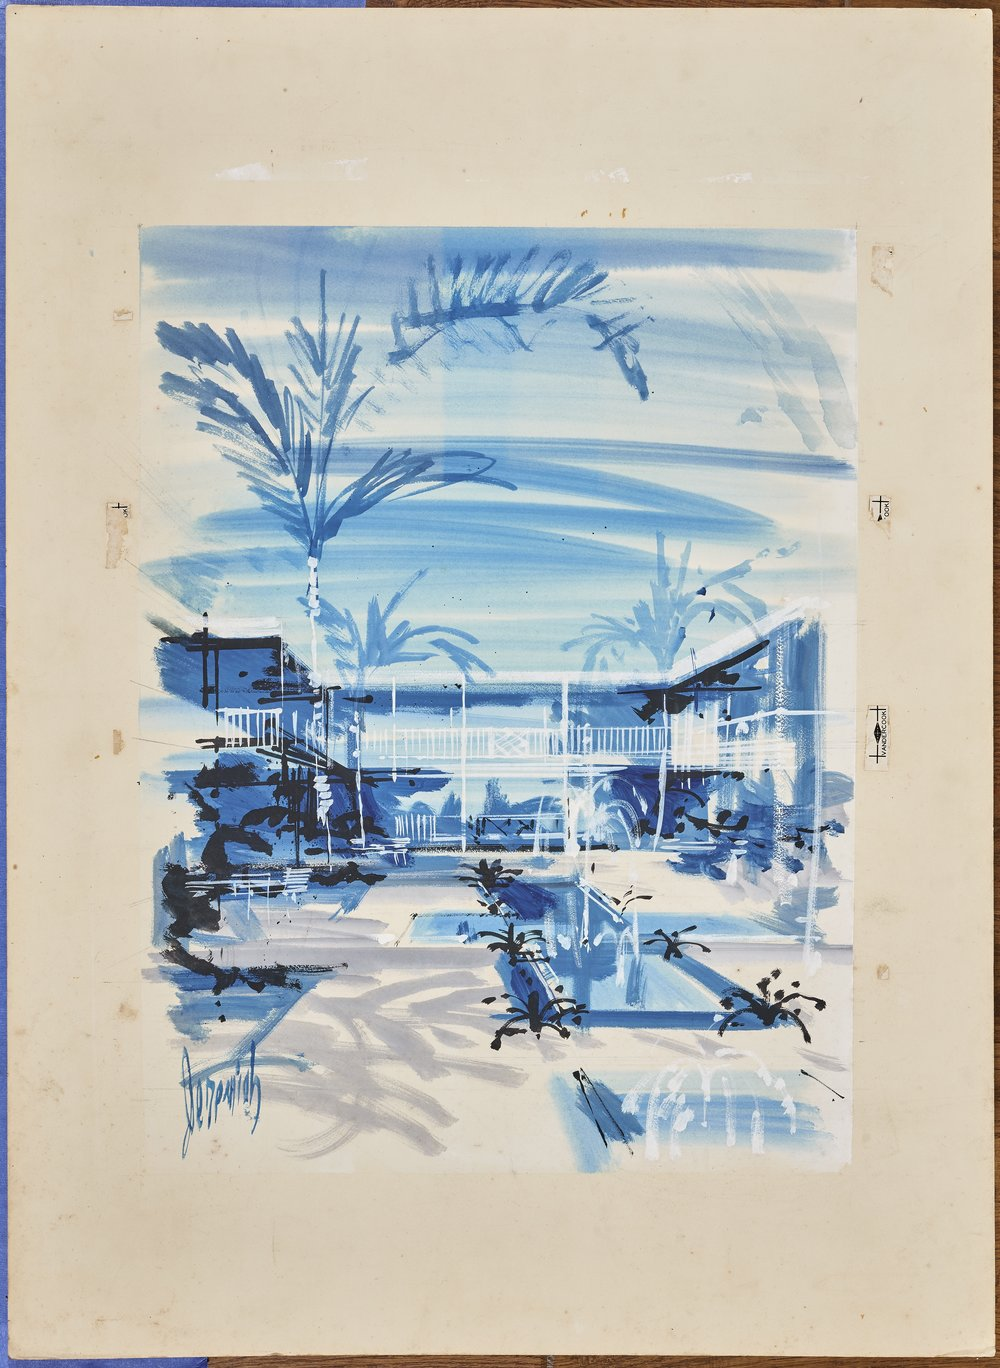 1962 Interior Design Maga Cover.jpg